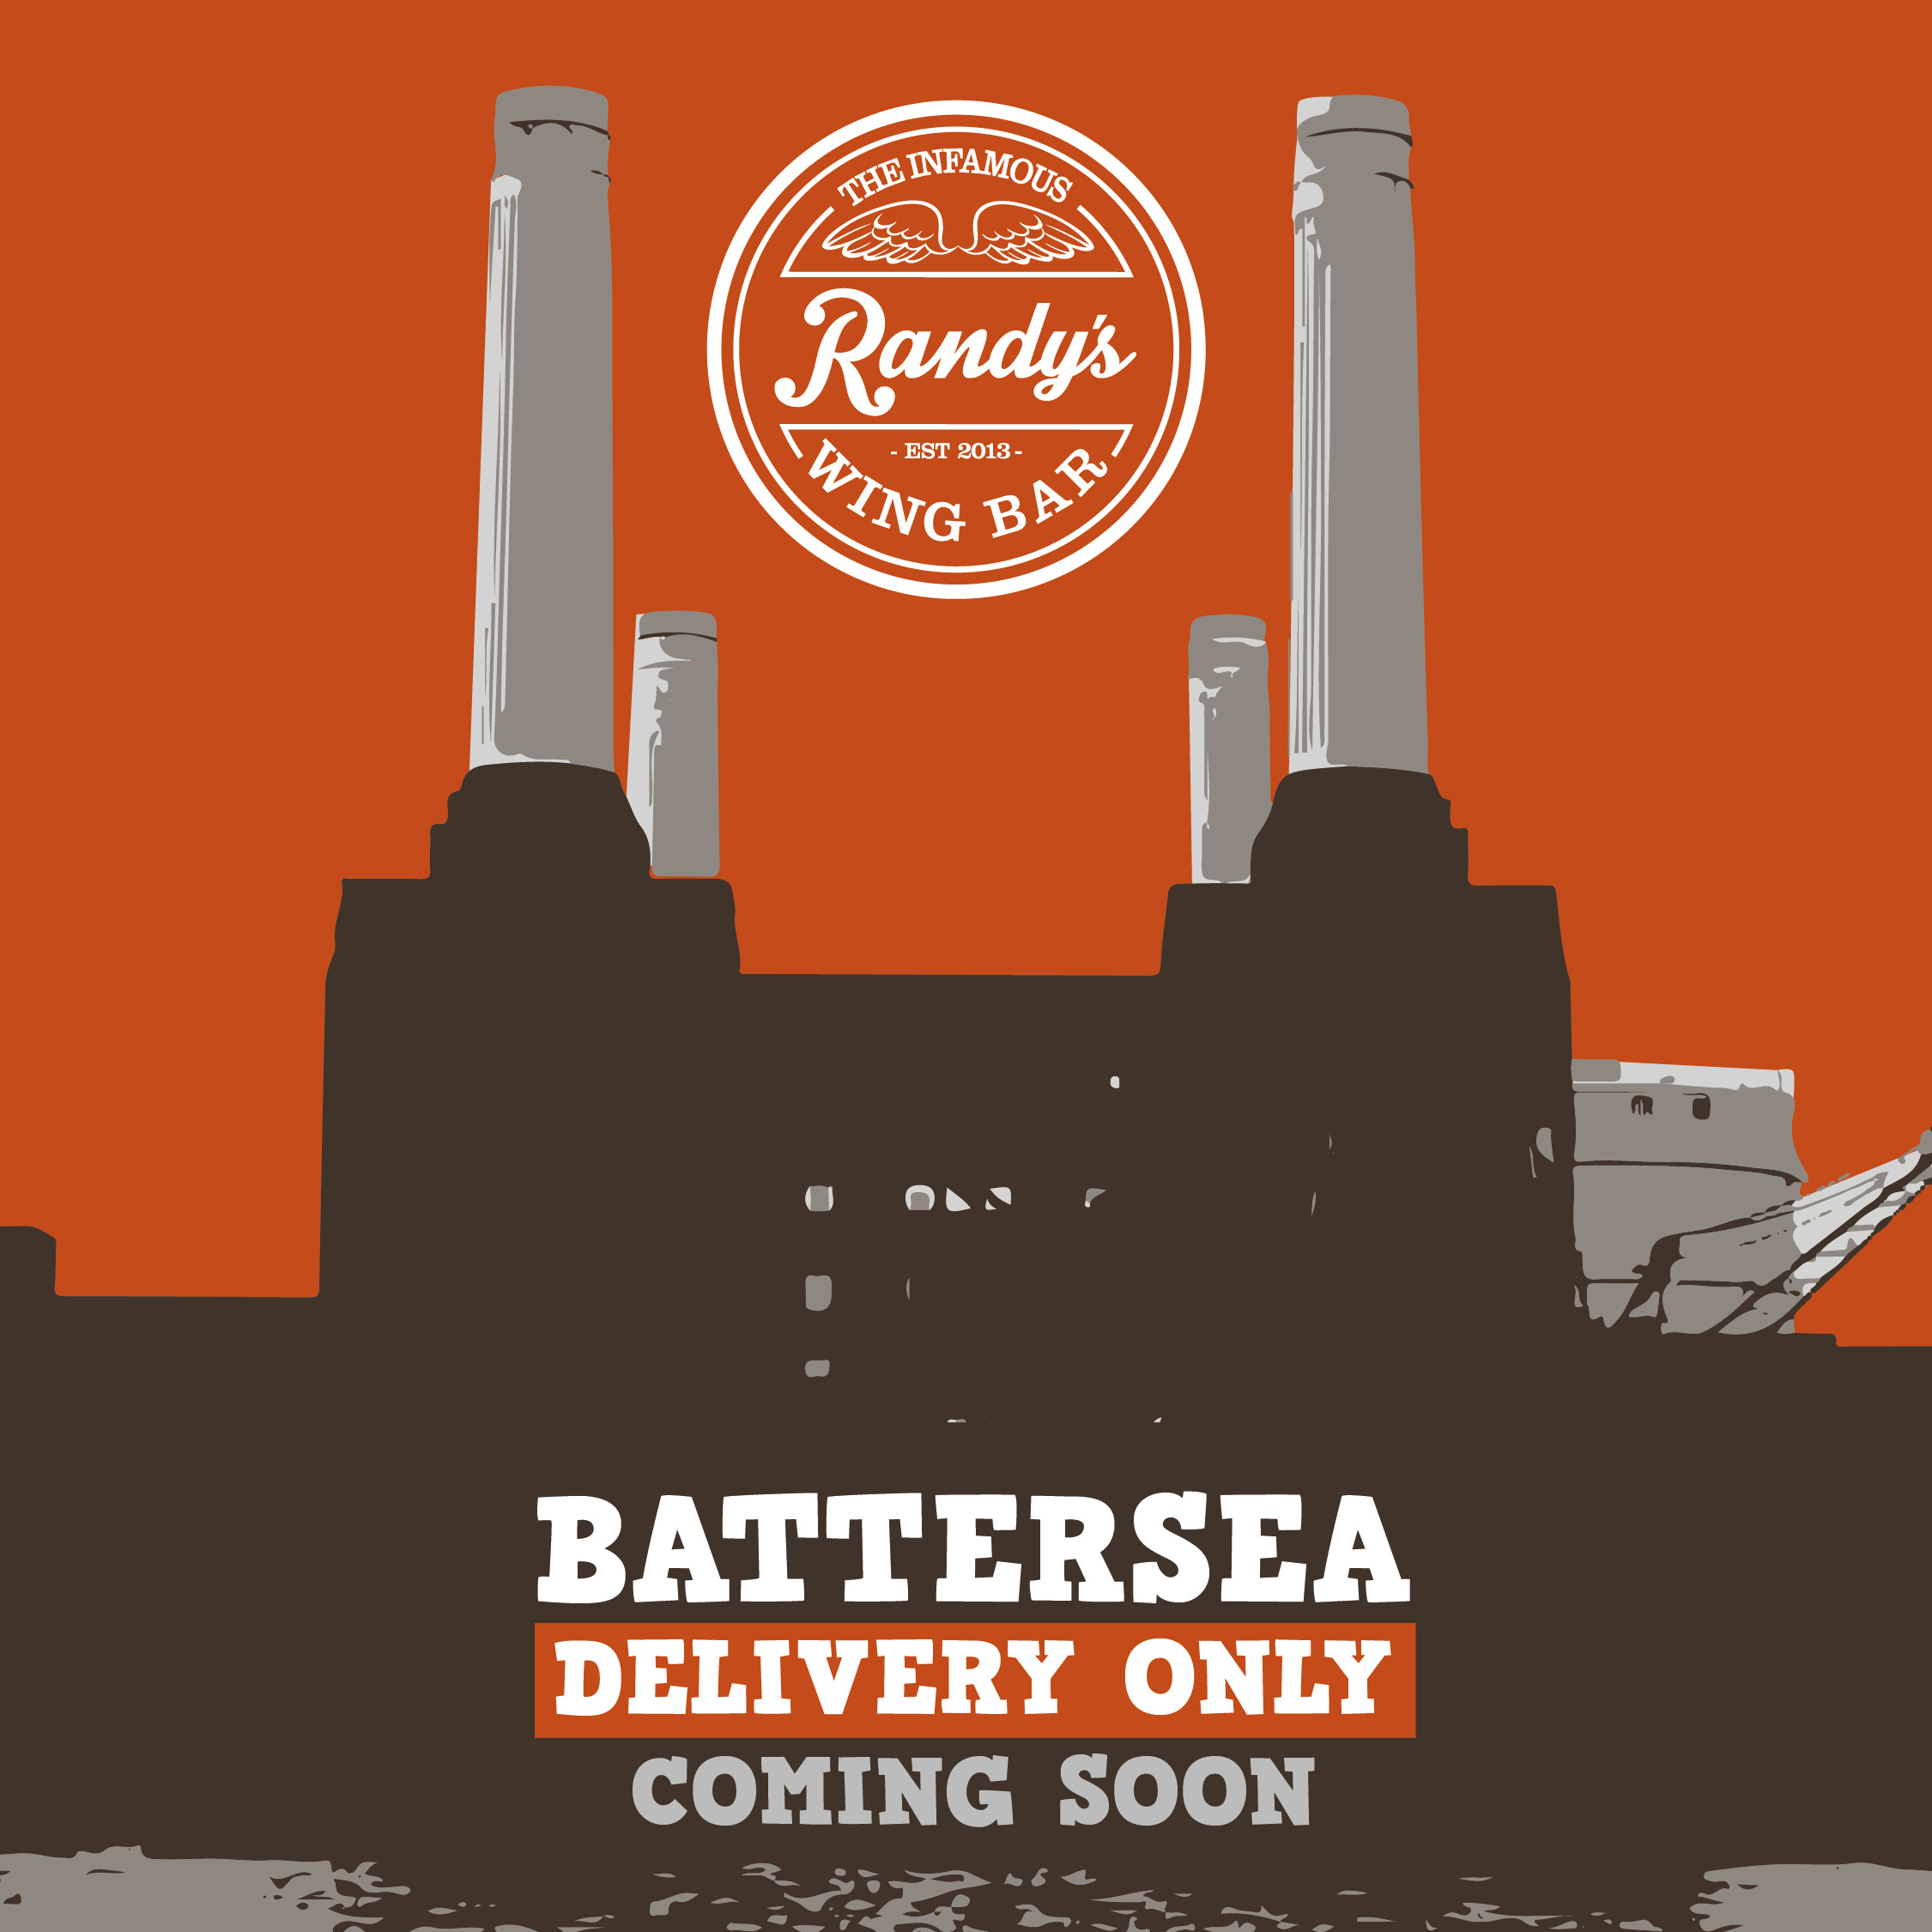 Battersea Delivery Only Coming Soon